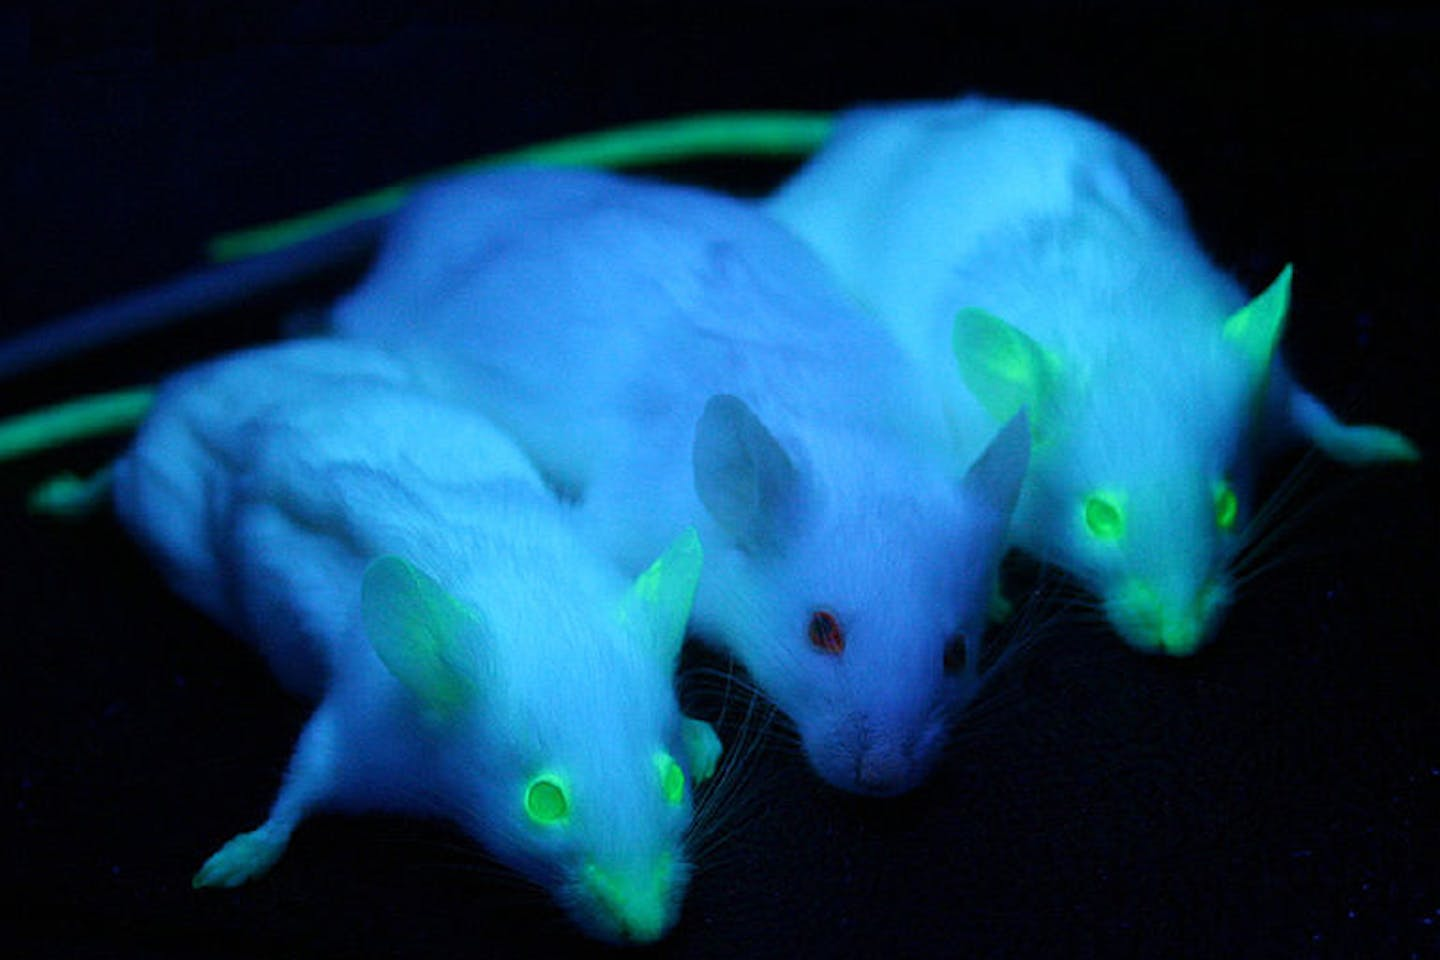 genetically modified mice